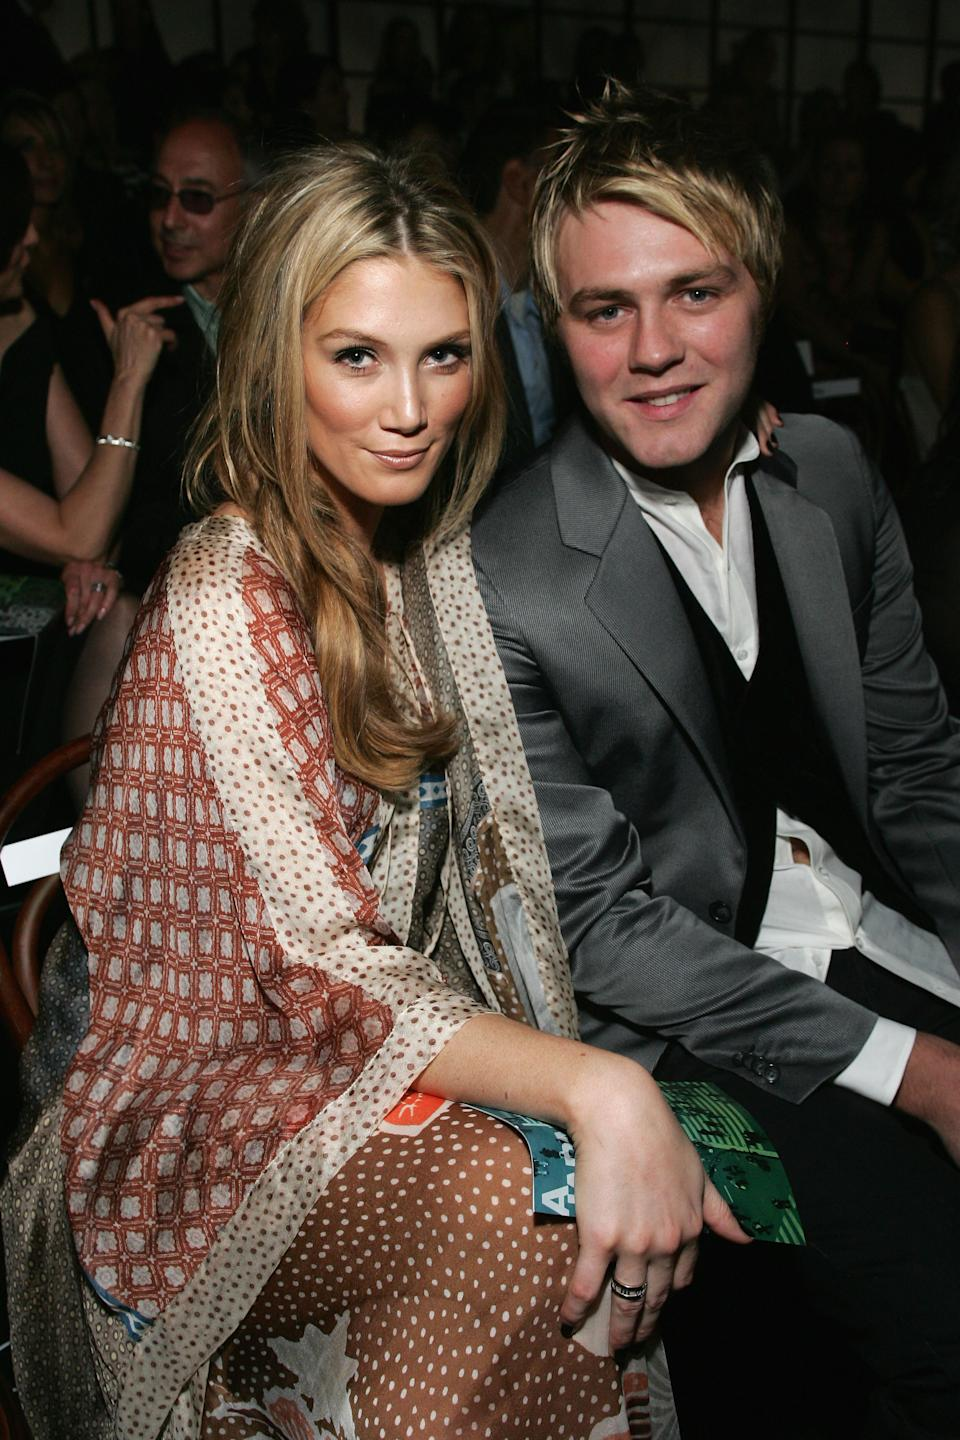 Singers Delta Goodrem and fiance Brian McFadden sit in the front row to watch the catwalk show at the David Jones Winter 2008 Collection Launch on February 12, 2008 in Sydney, Australia.